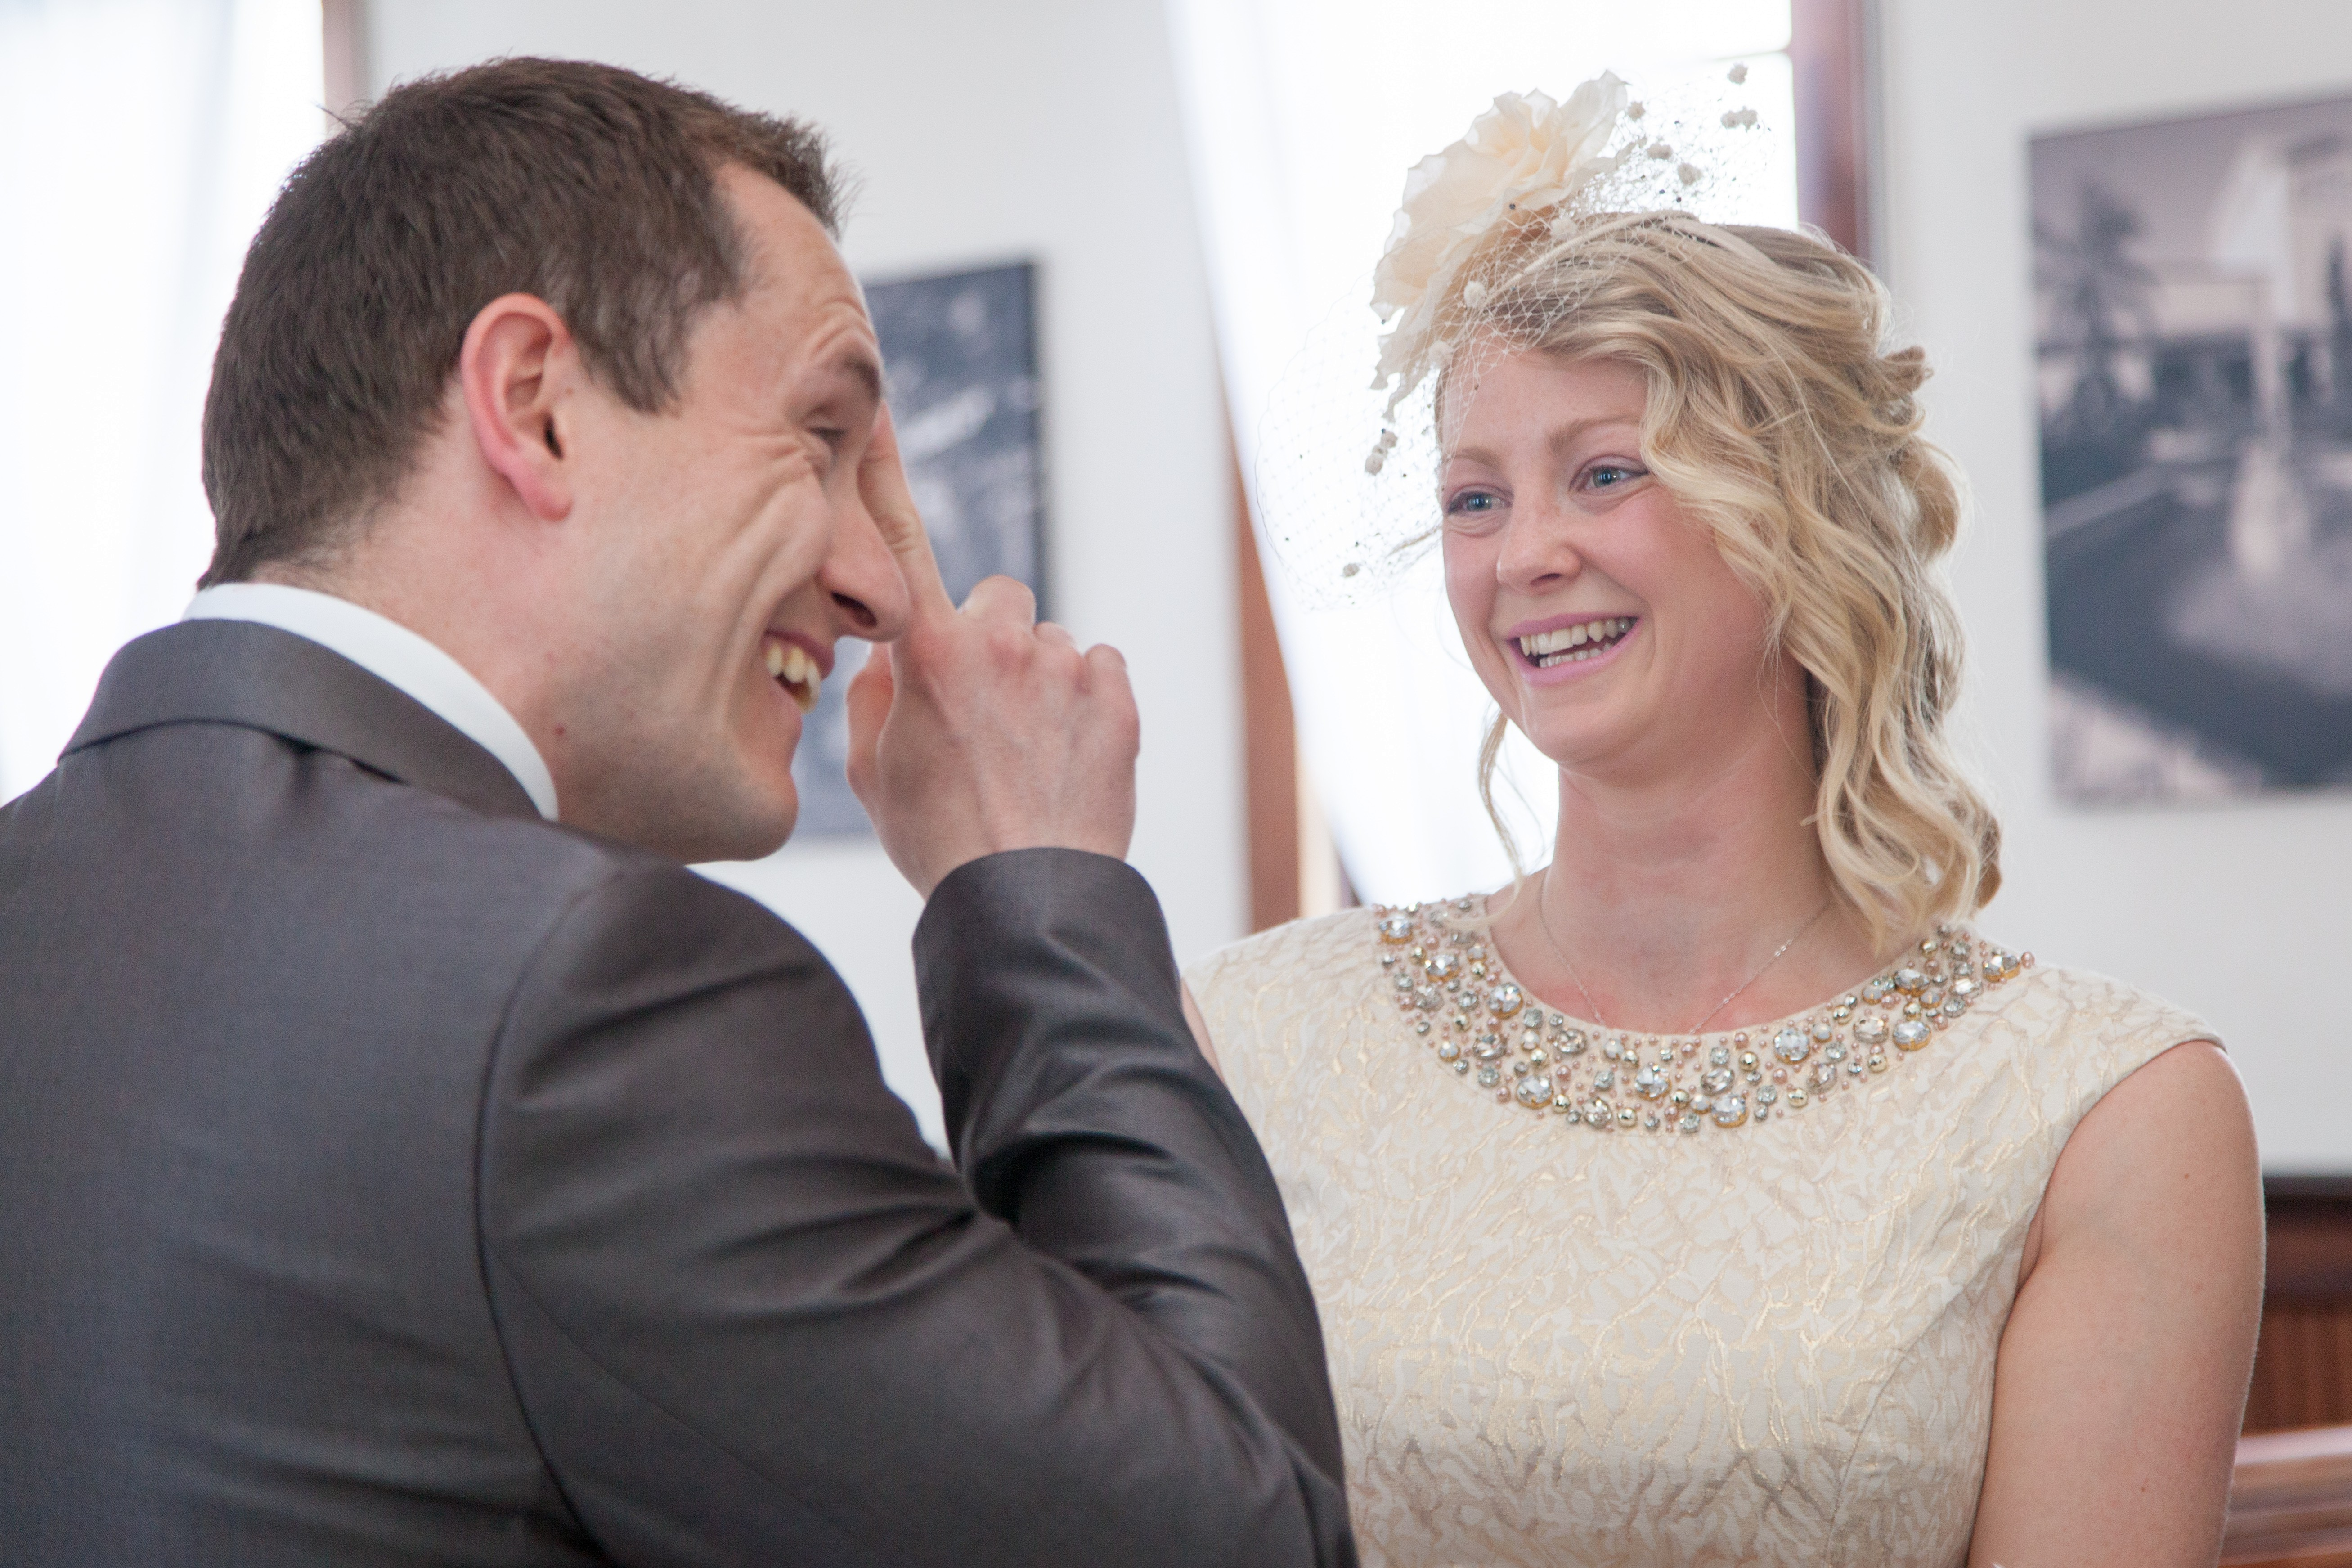 Sweet vows and laughter